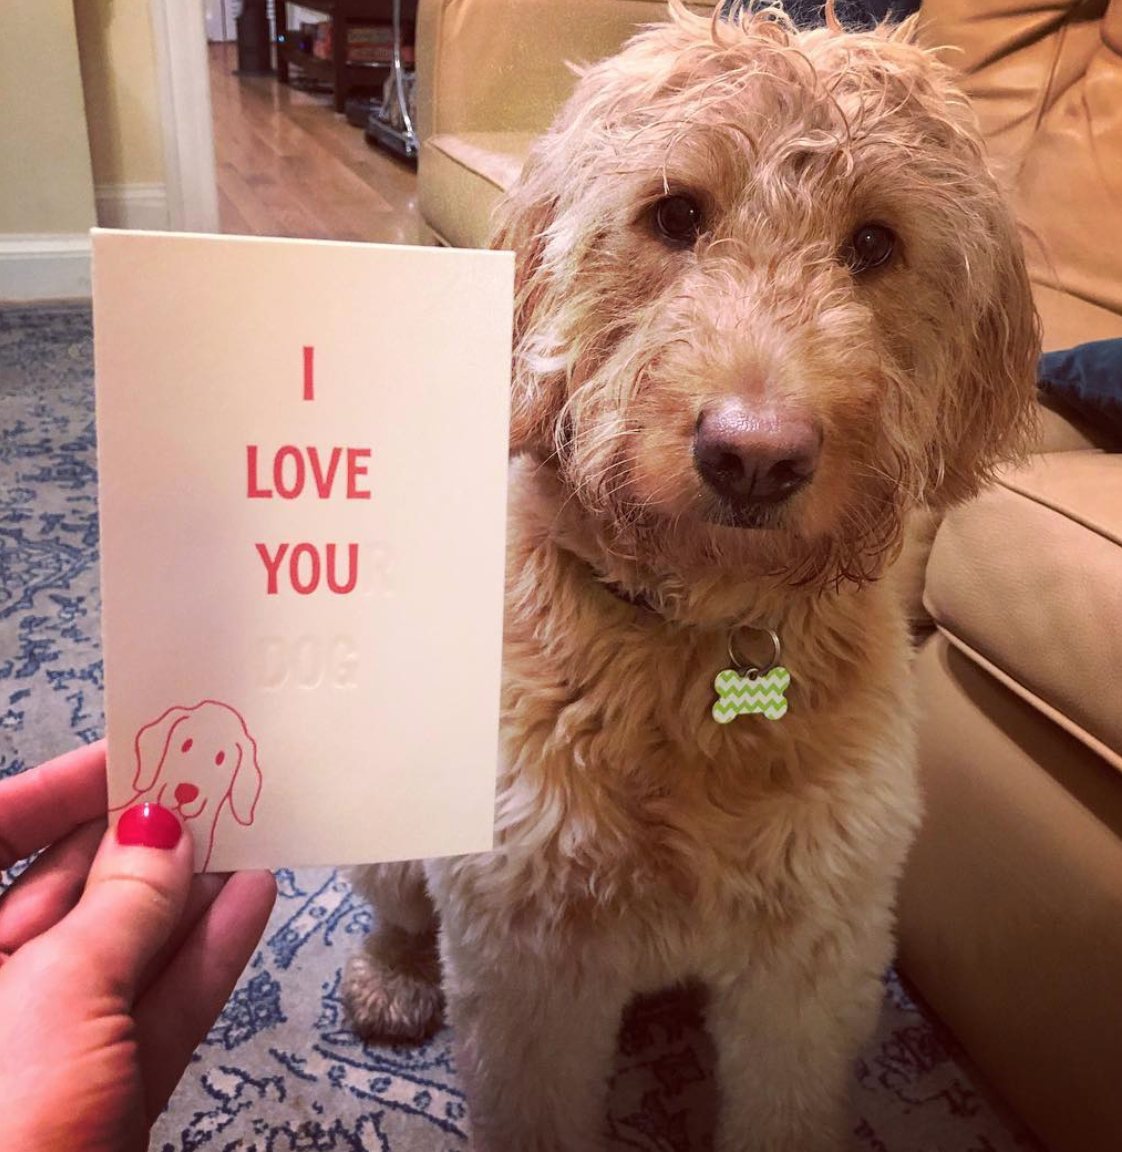 We don't need a card to prove our love! (Image via @rorygbecker)